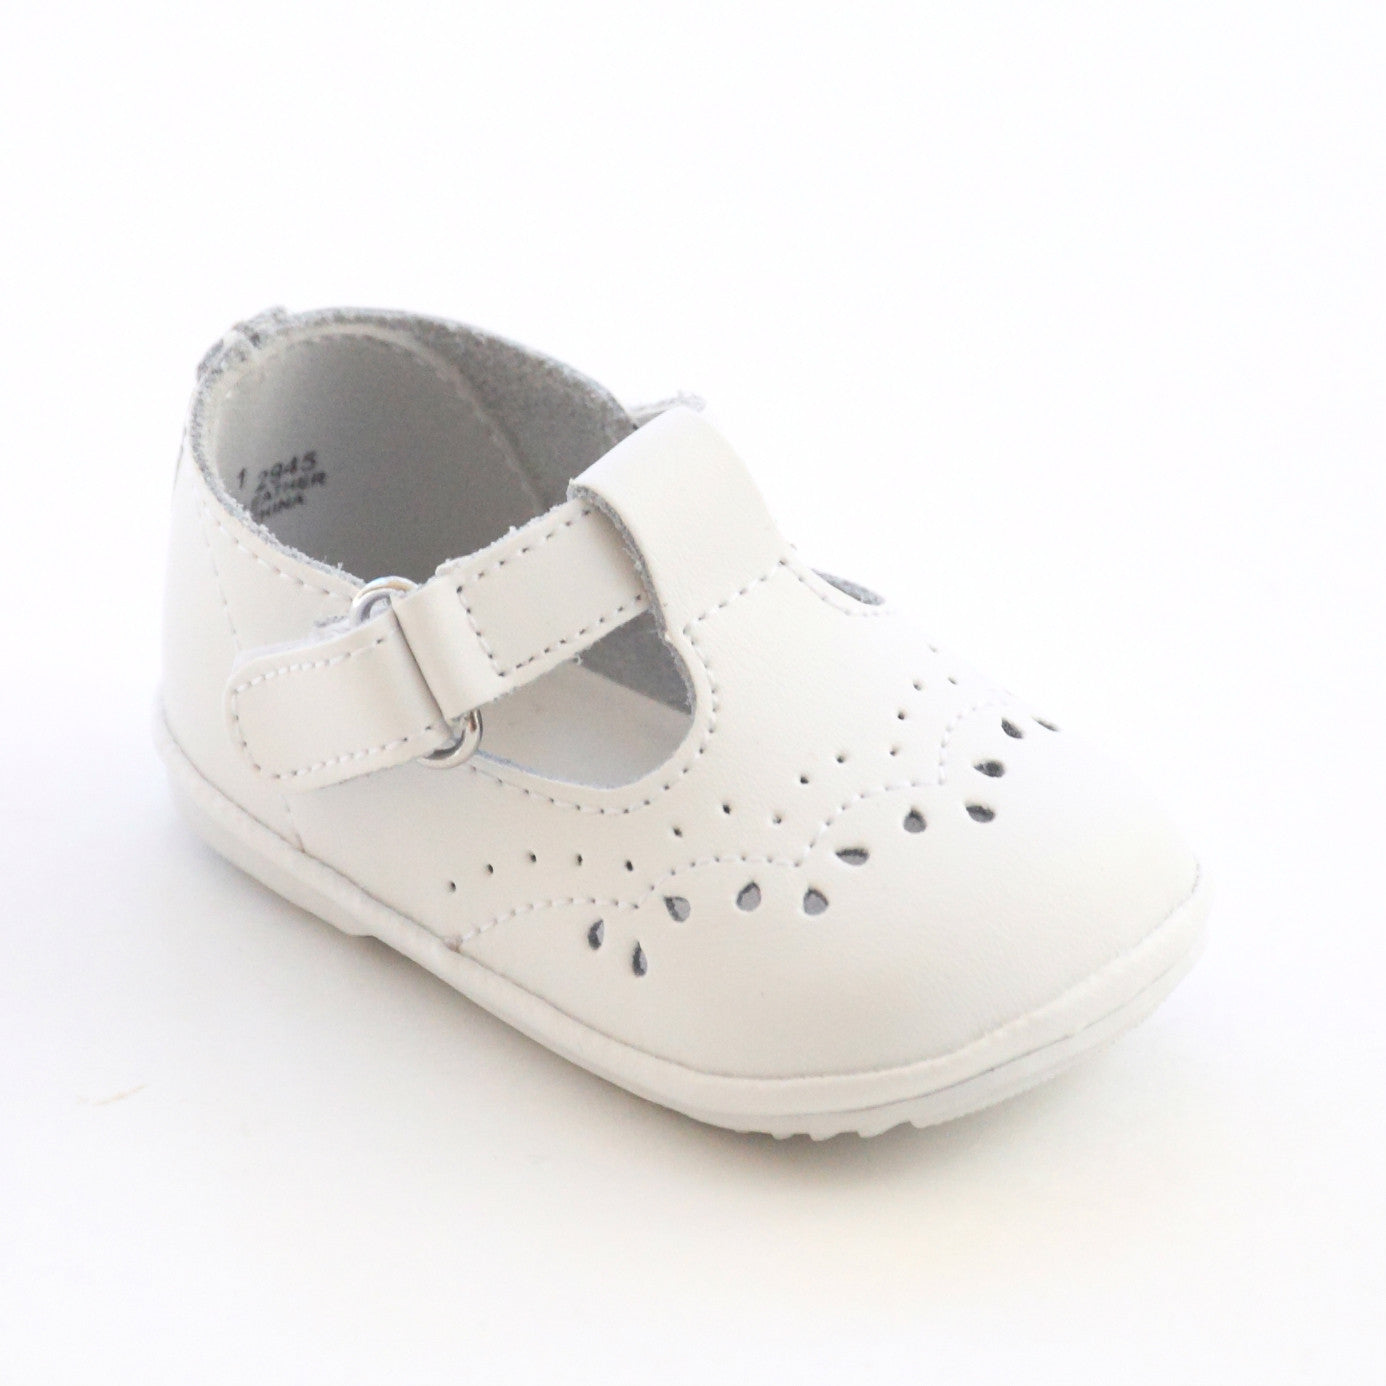 db0cf139ff991 Angel Shoes Infant Girls 2945 White Leather T-Strap Mary Janes ...